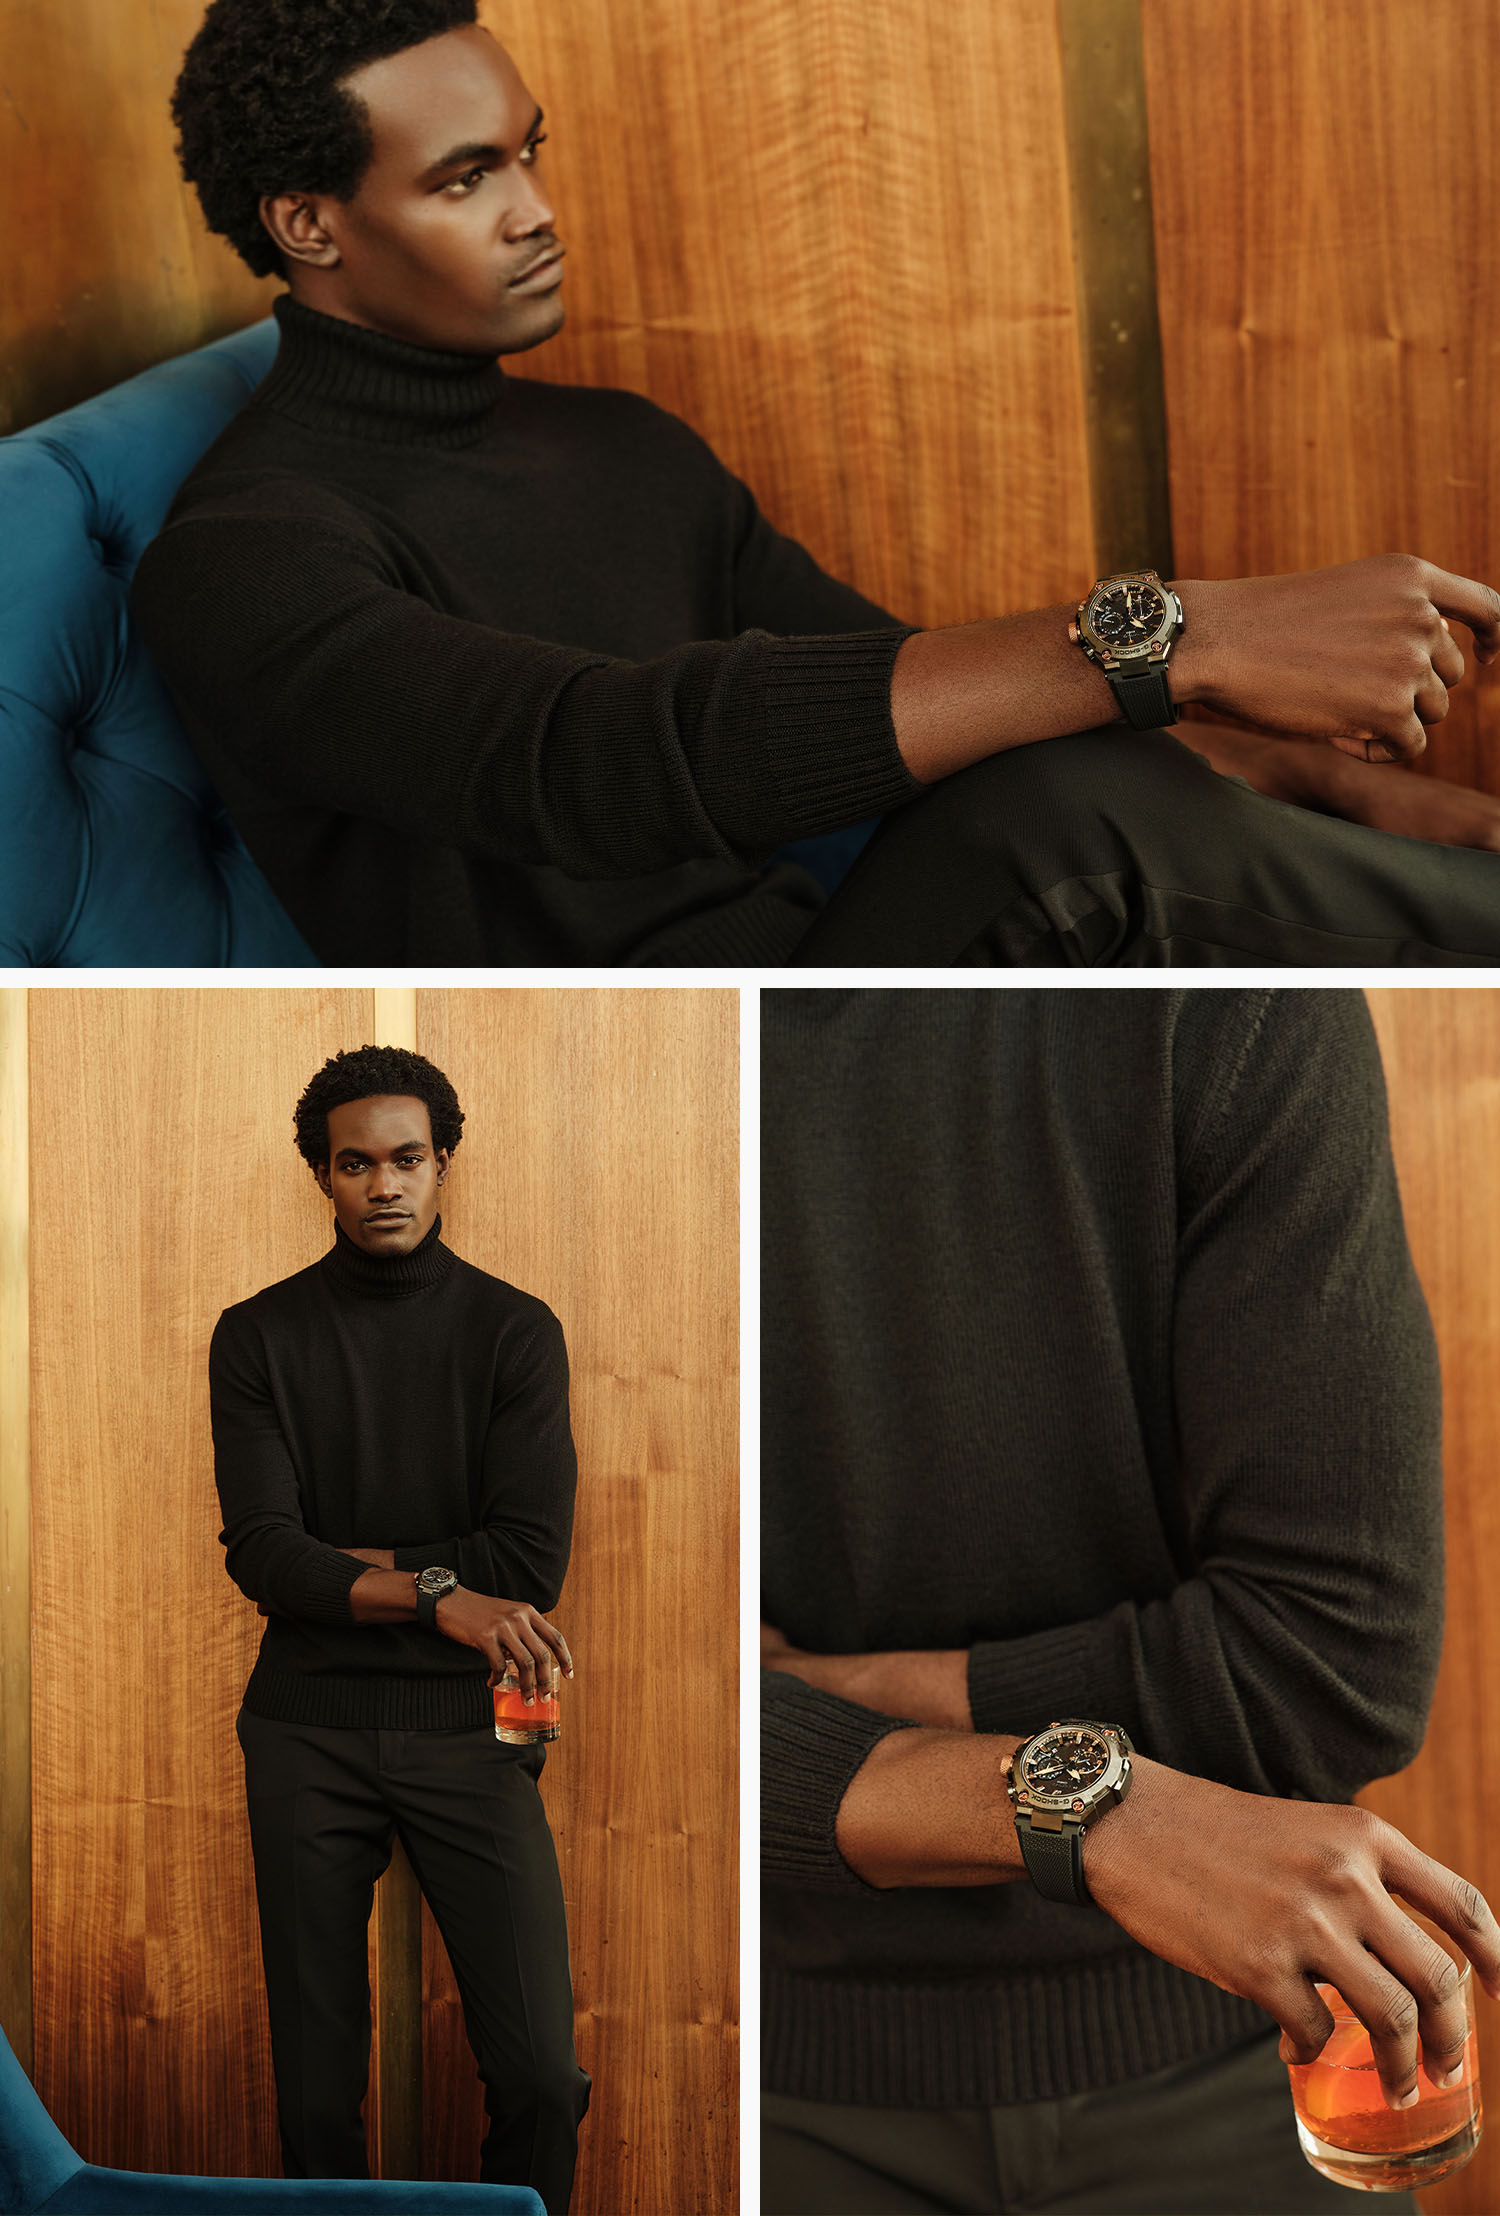 handsome man in hotel bar wearing a black turtleneck sweater, black slacks and a casio g shock watch, holding an old fashioned cocktail